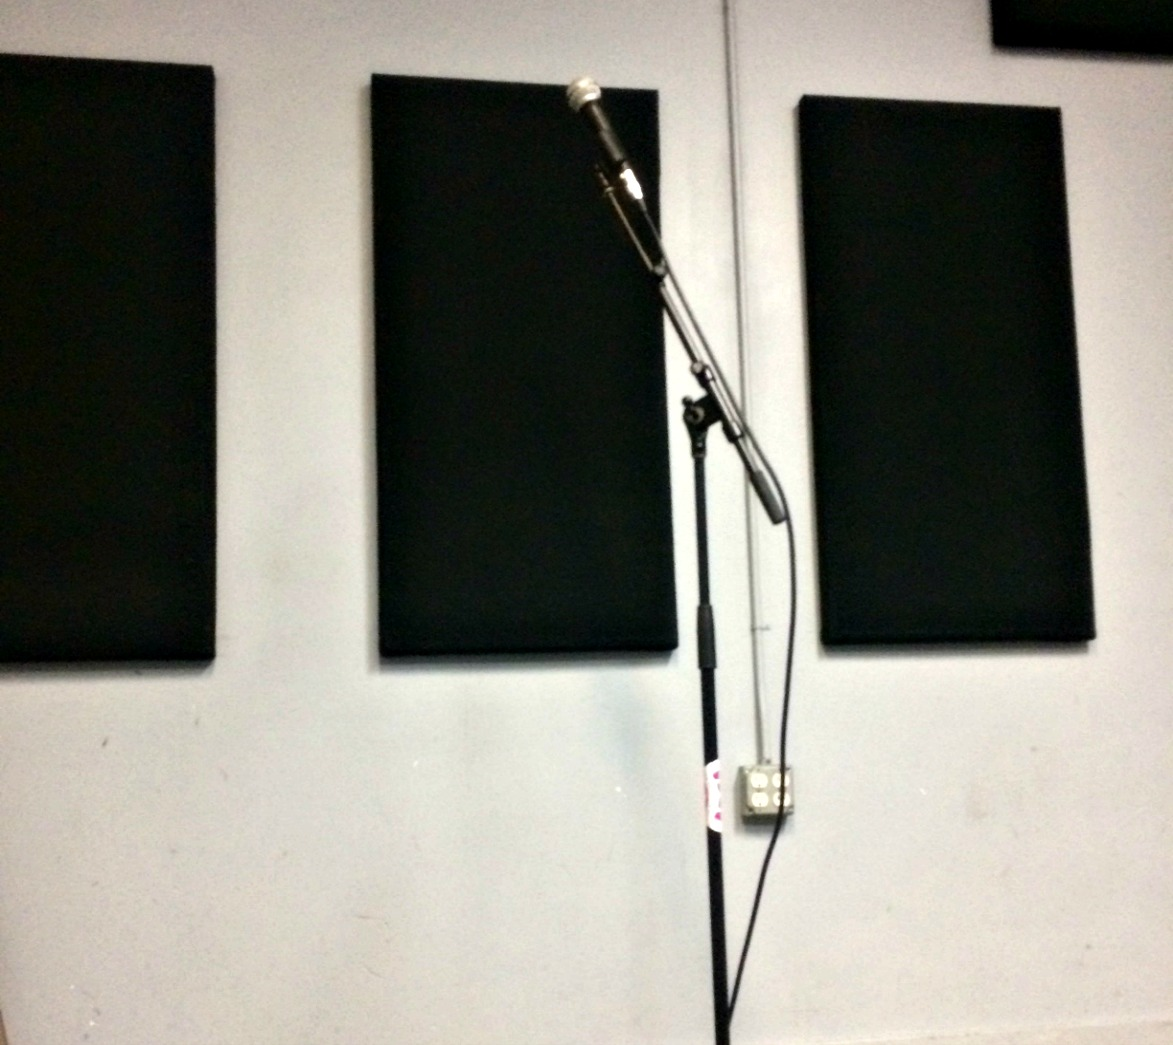 Microphone w/cable and stand - $15/day  Deposit: $200